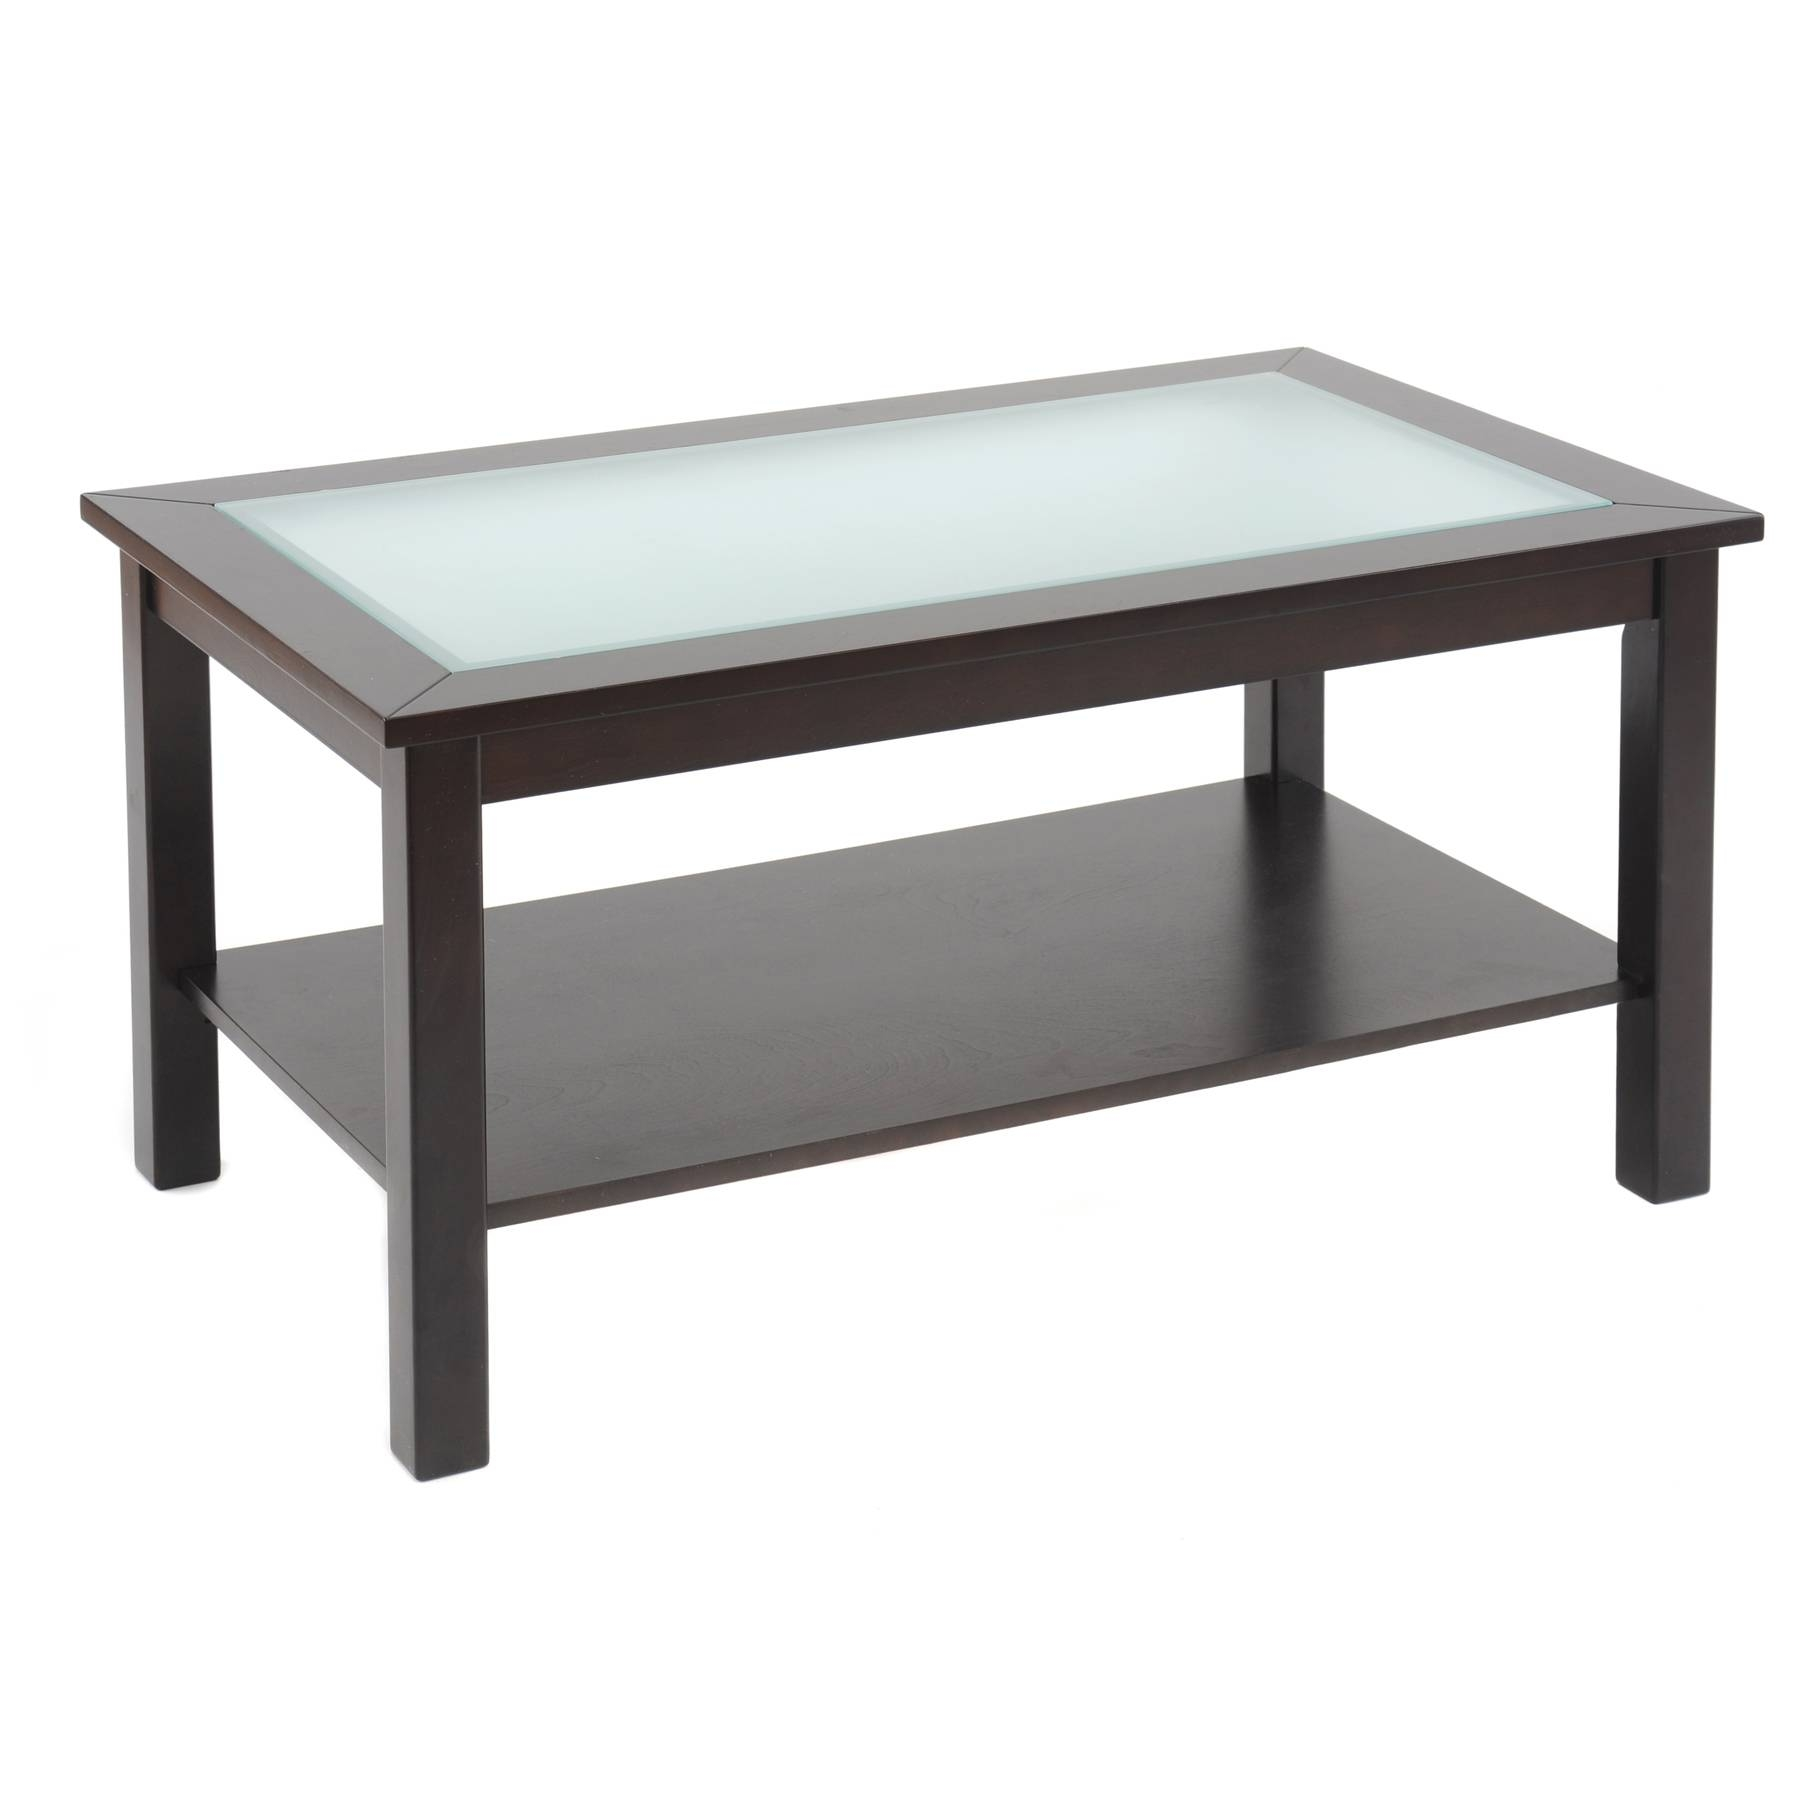 Oak Coffee Table With Black Glass Top | Coffee Tables Decoration throughout Dark Wood Coffee Tables With Glass Top (Image 17 of 30)